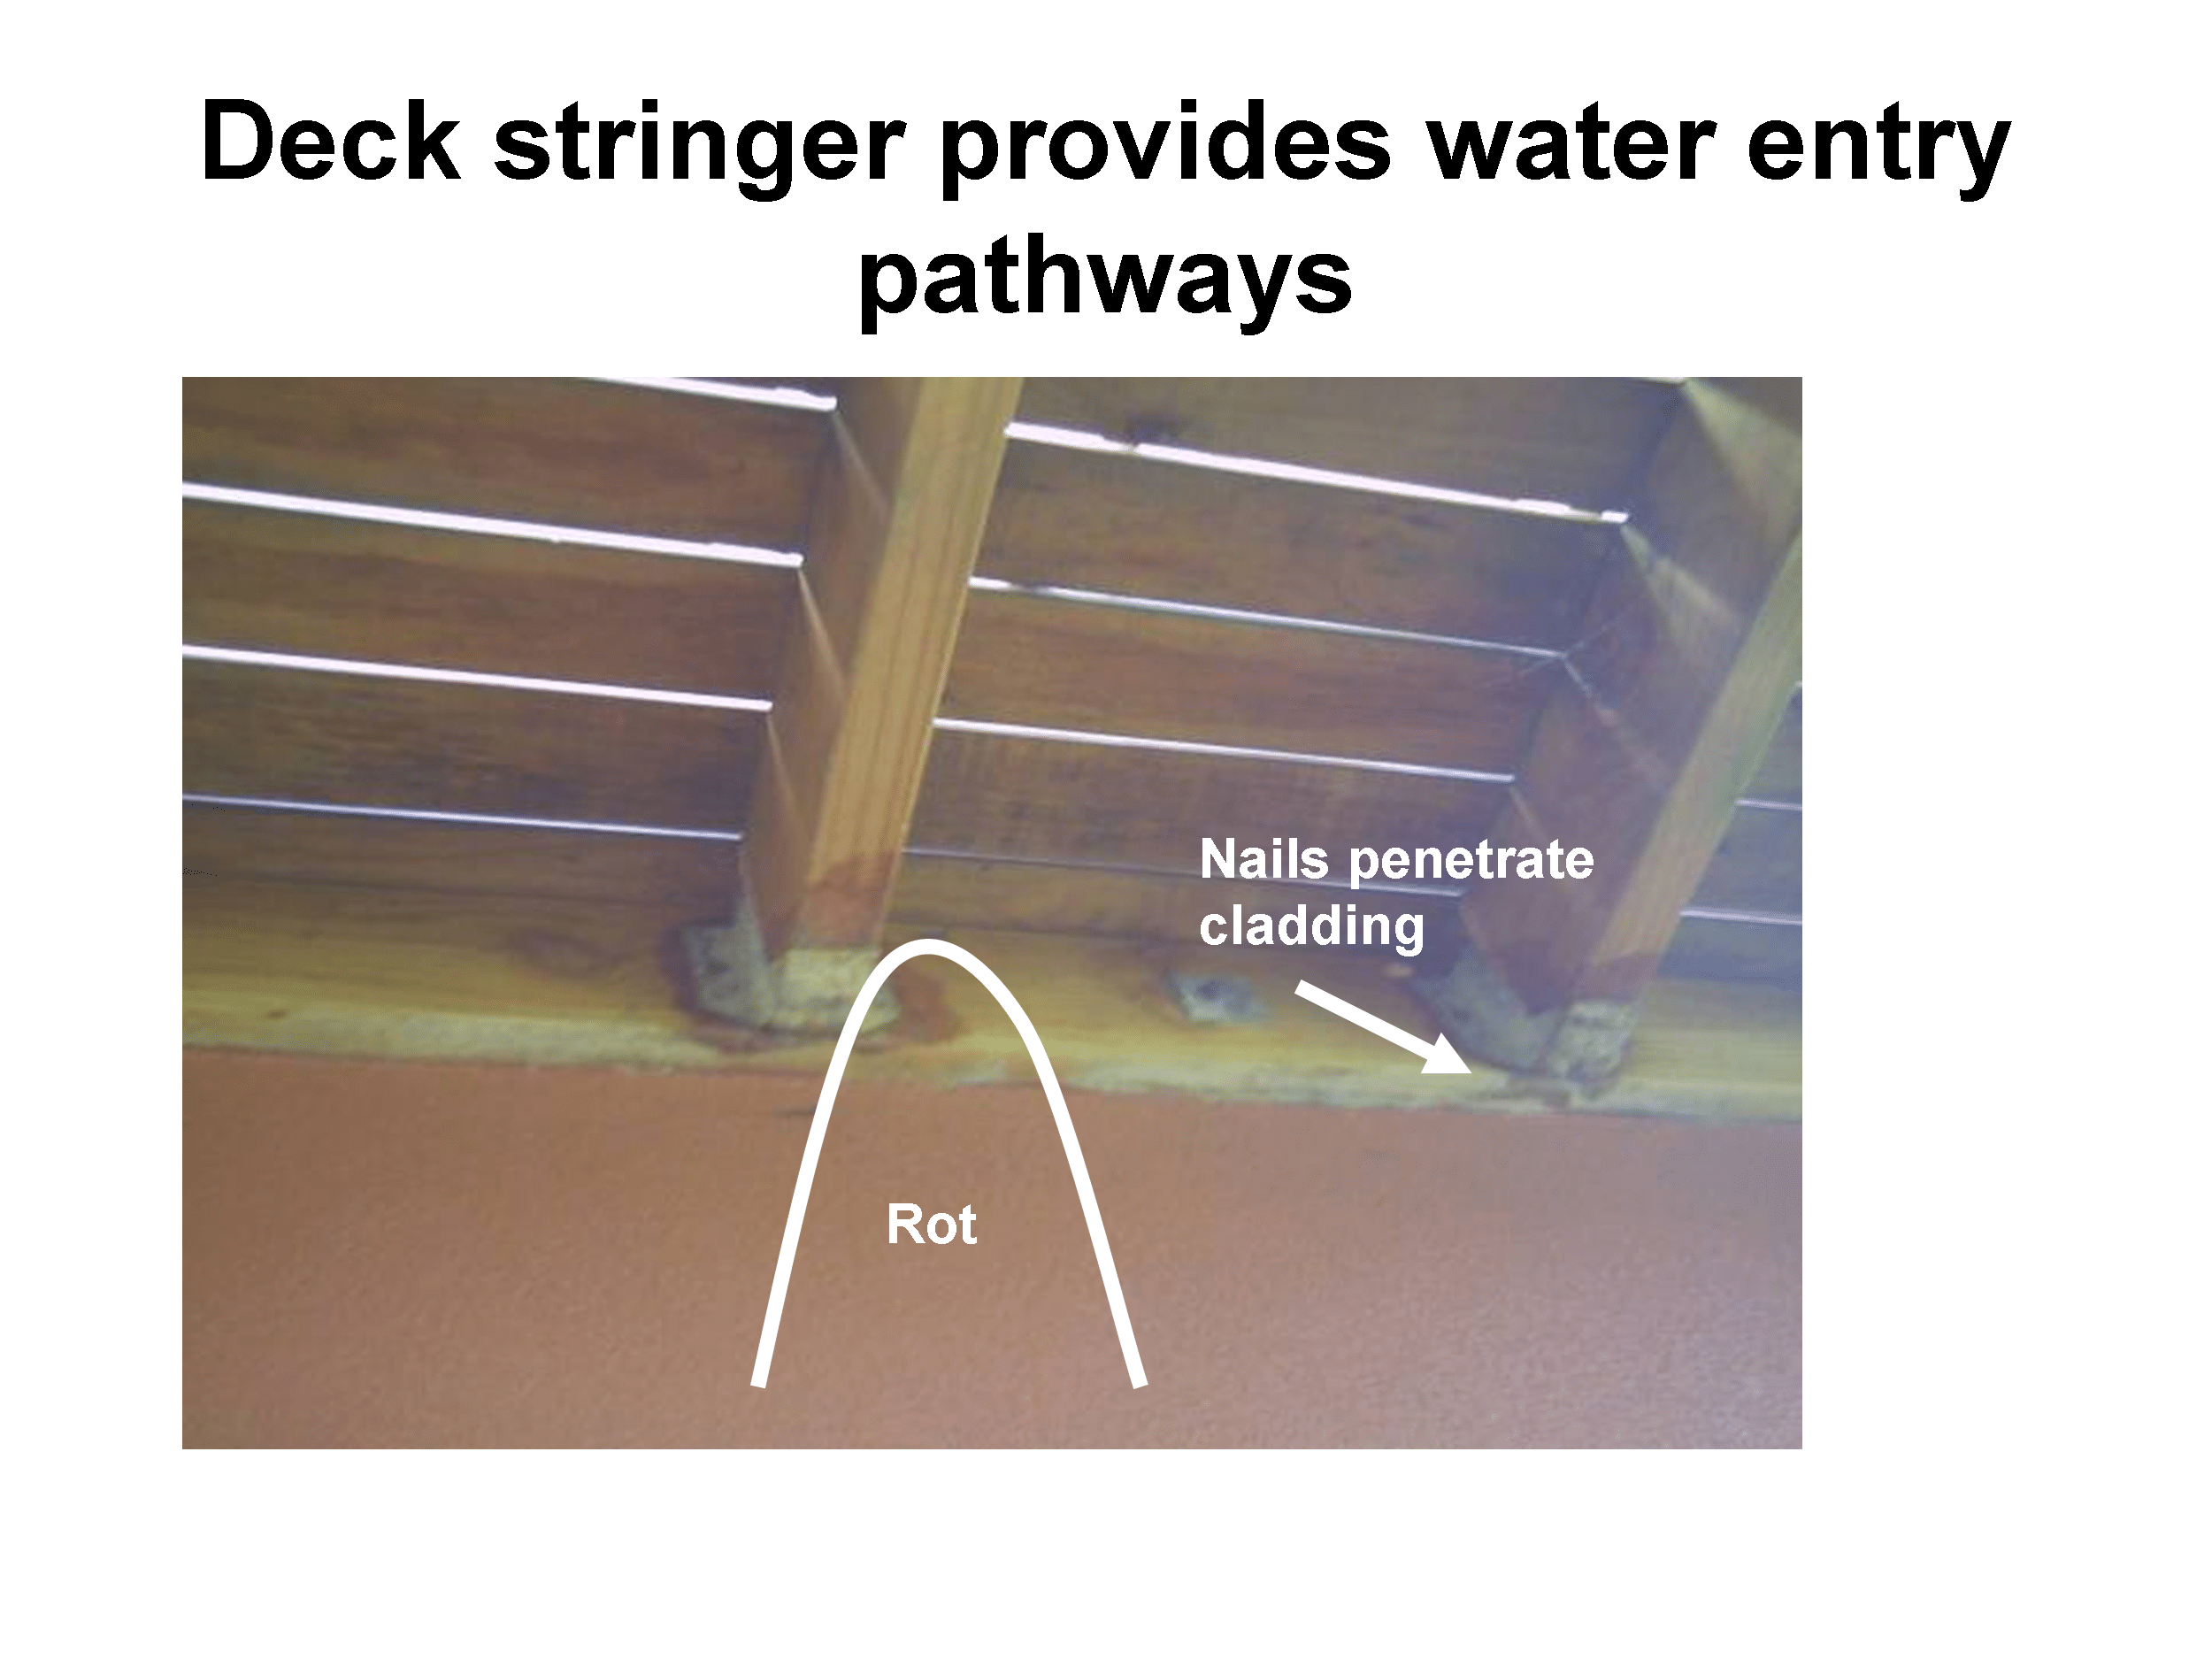 Plaster homes often leak where deck stringers are bolted through the cladding